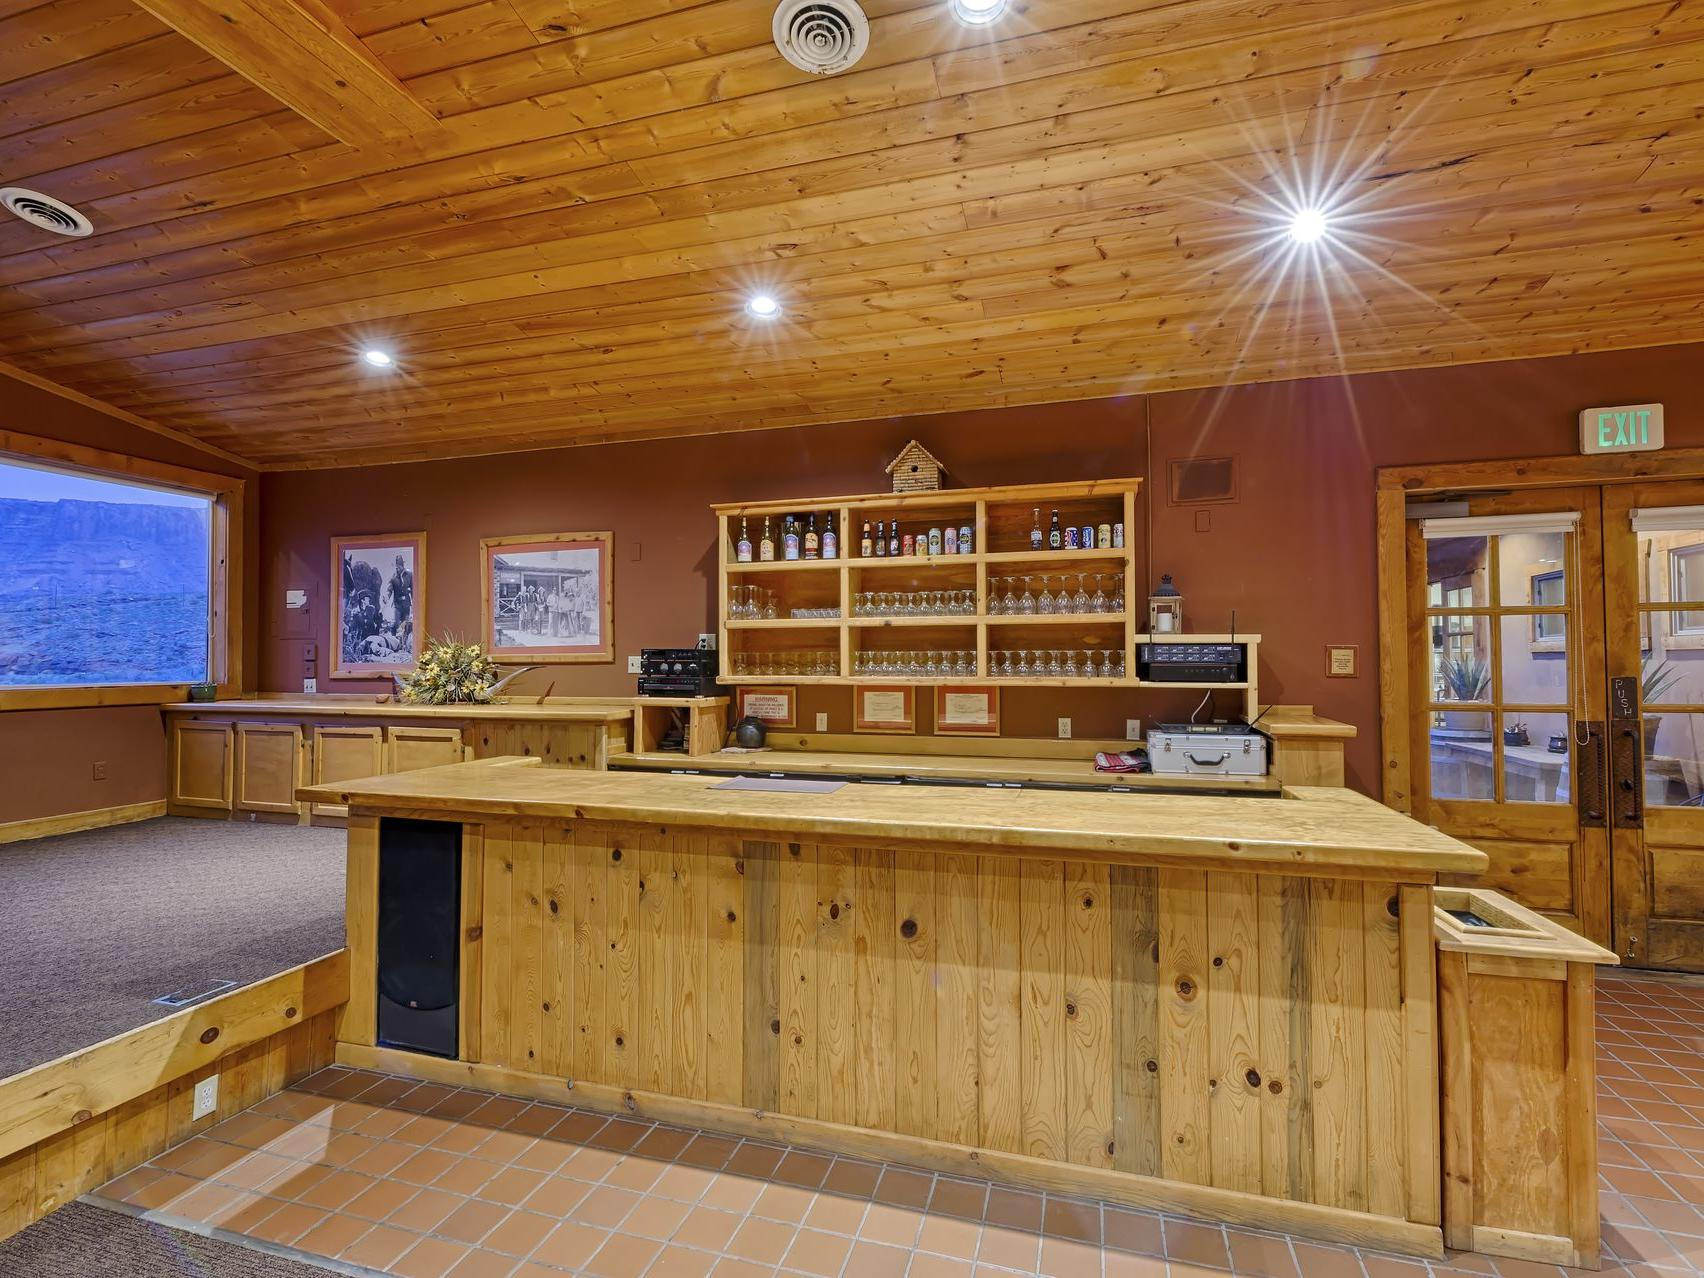 conference bar area